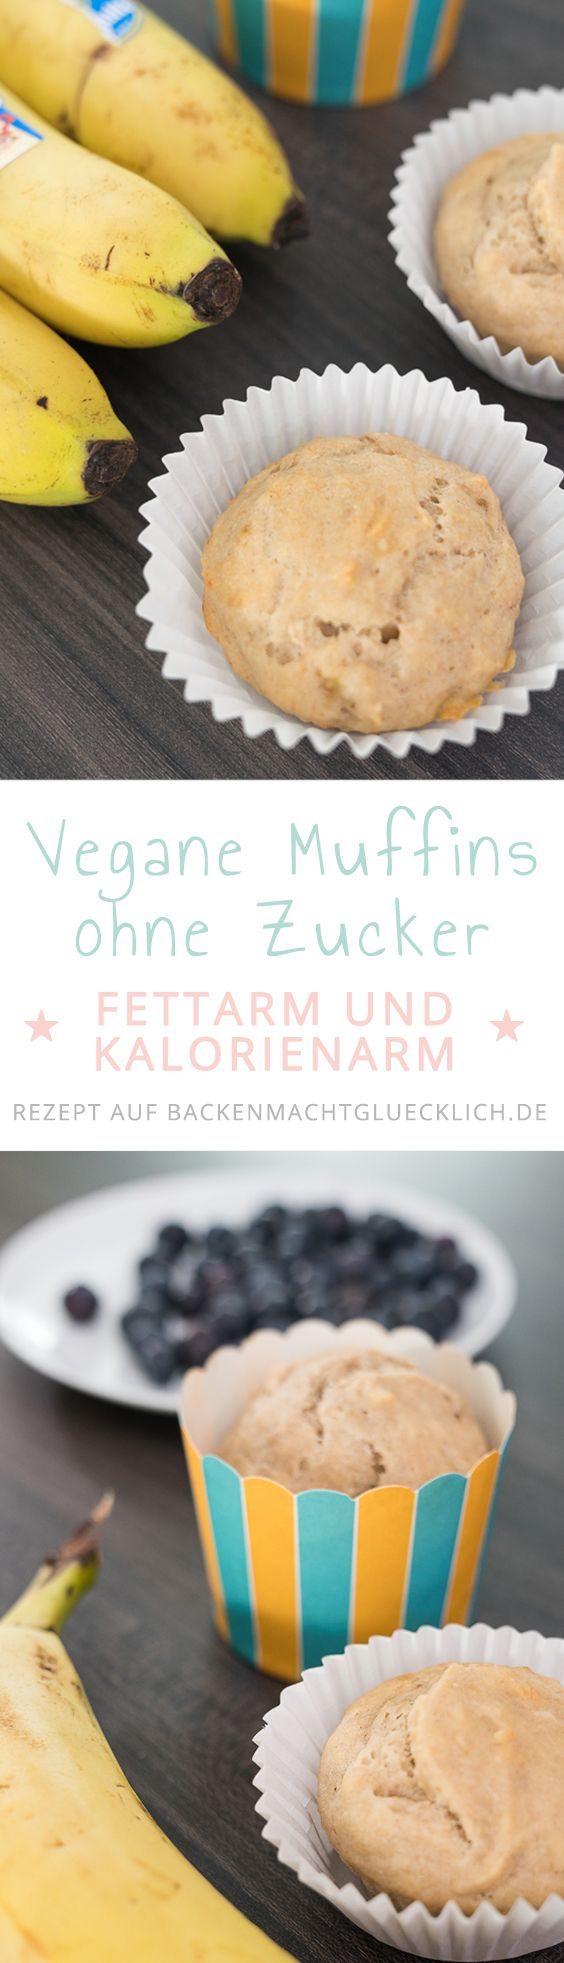 die besten 25 buttermilch muffins ideen auf pinterest muffins mit buttermilch buttermilch. Black Bedroom Furniture Sets. Home Design Ideas